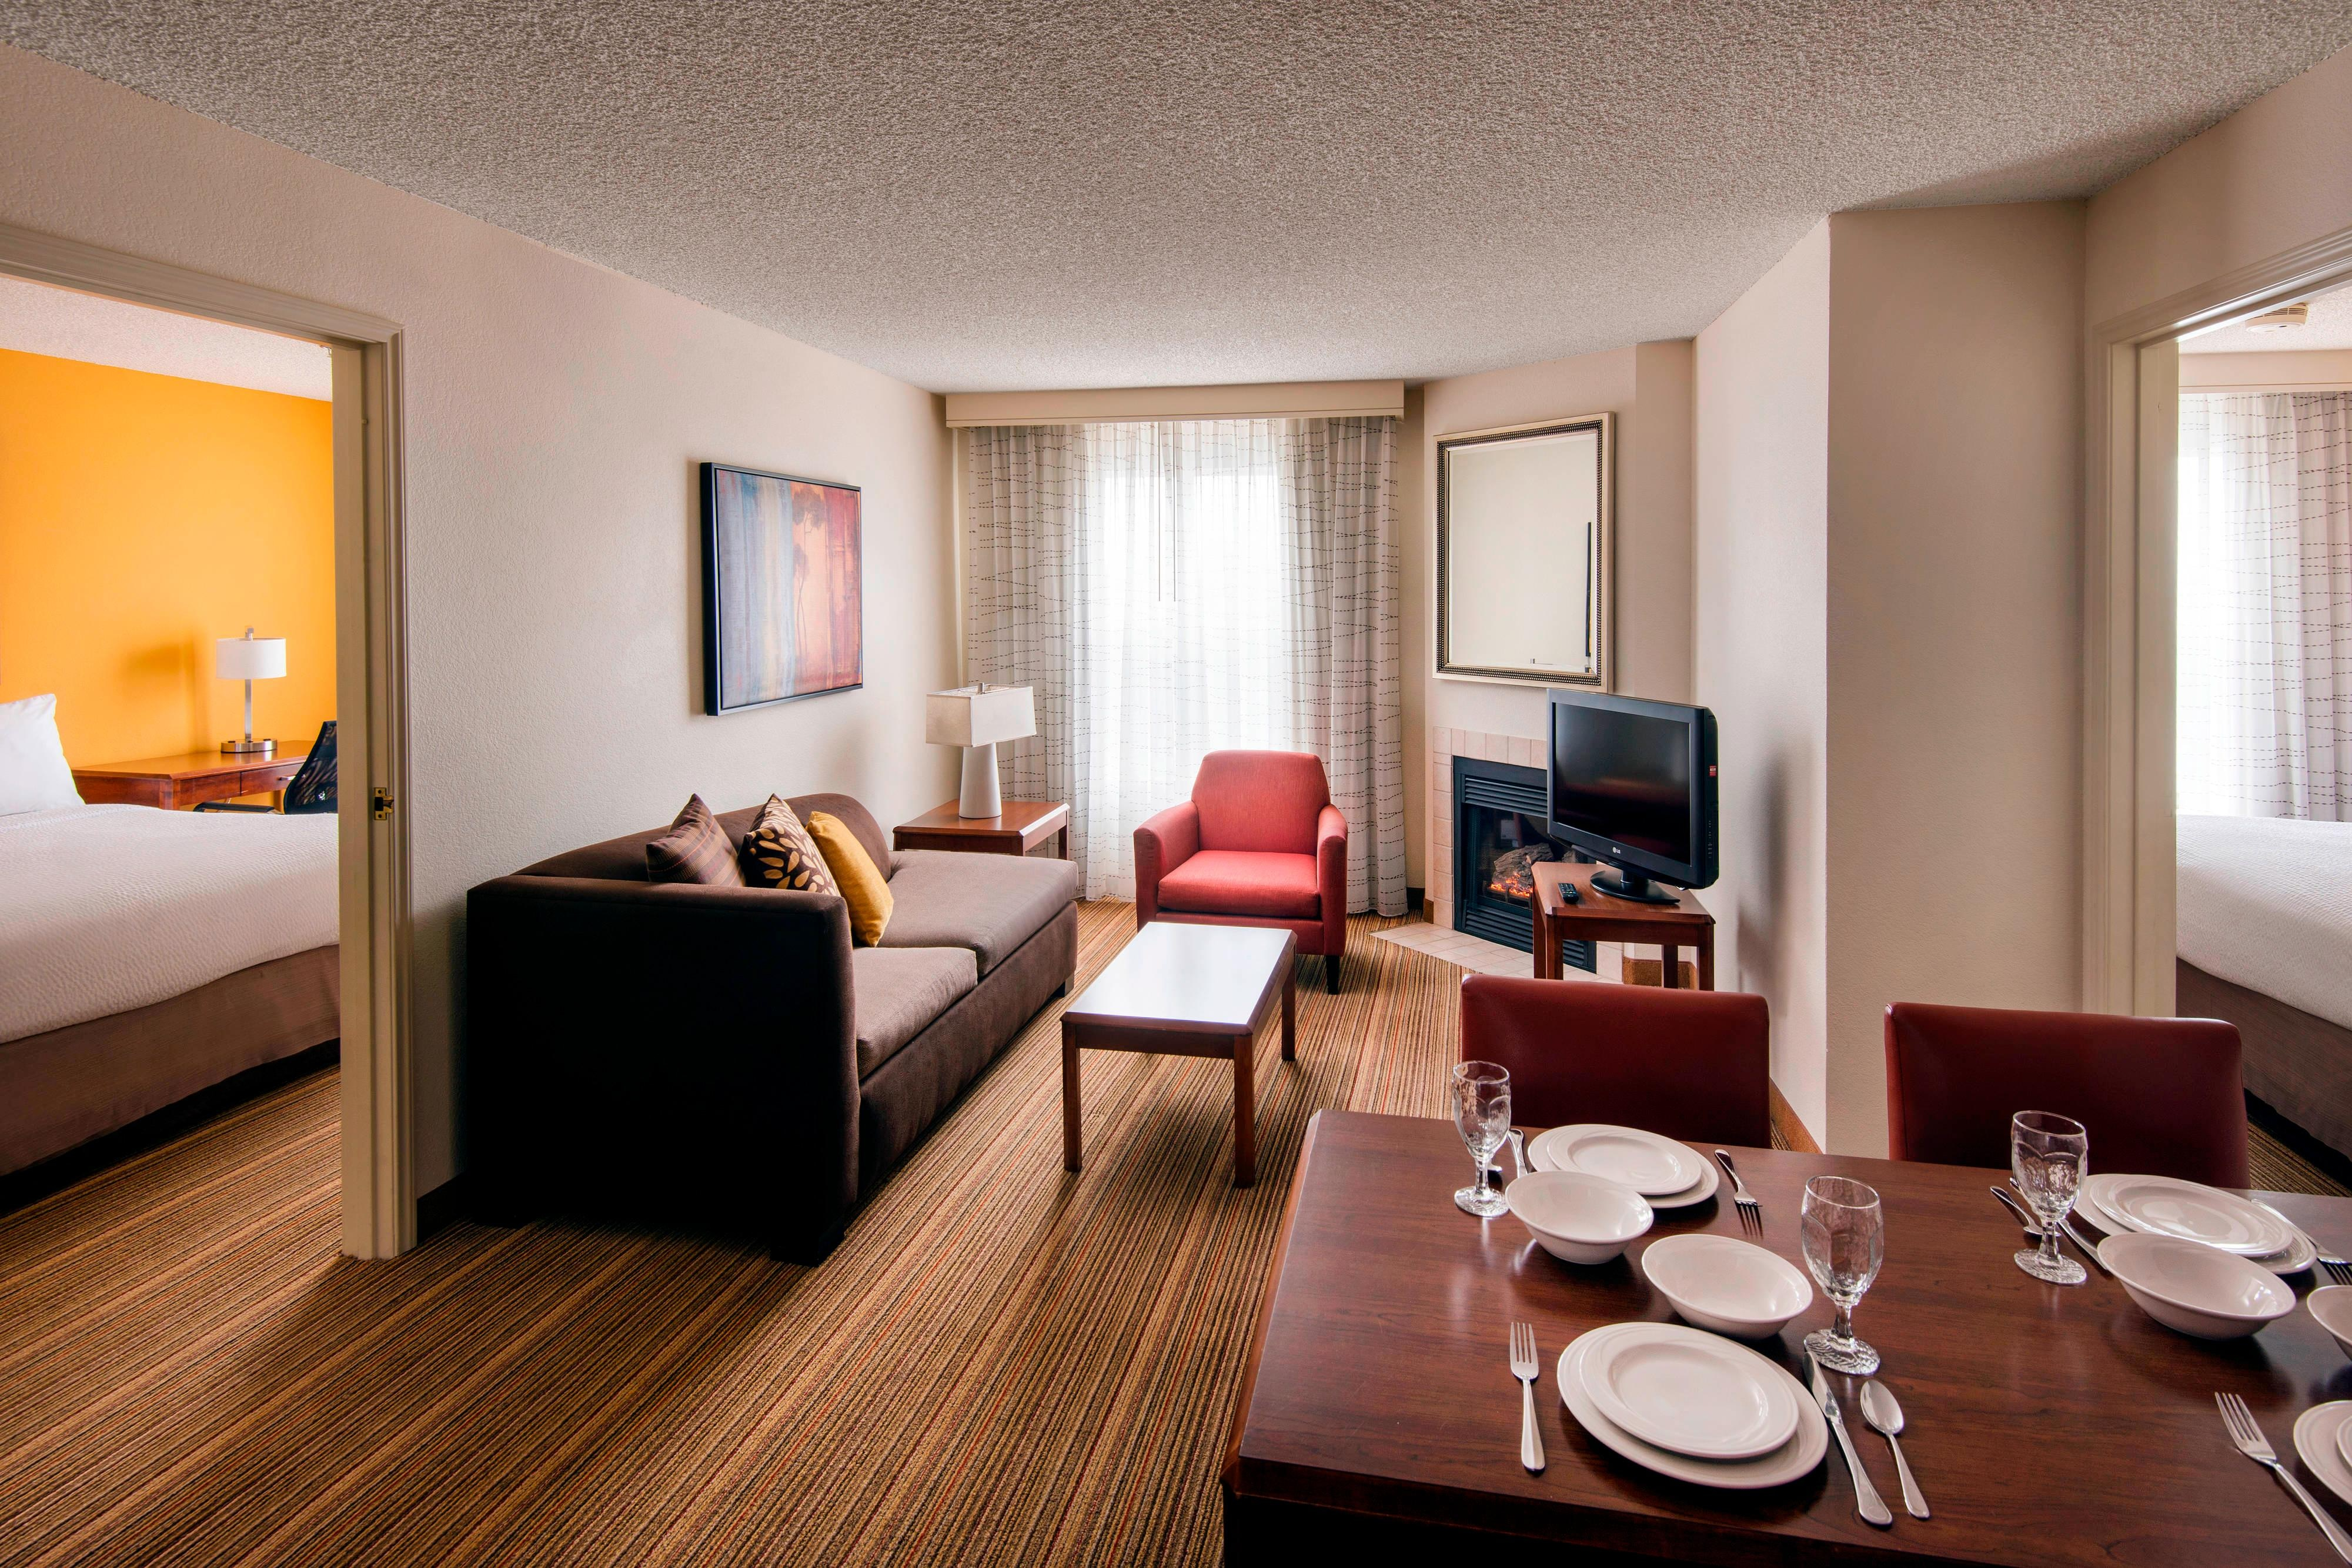 clsc louisiana monroe rooms residence mluri hotels stay suite in orleans extended hor bedroom inn suites hotel new